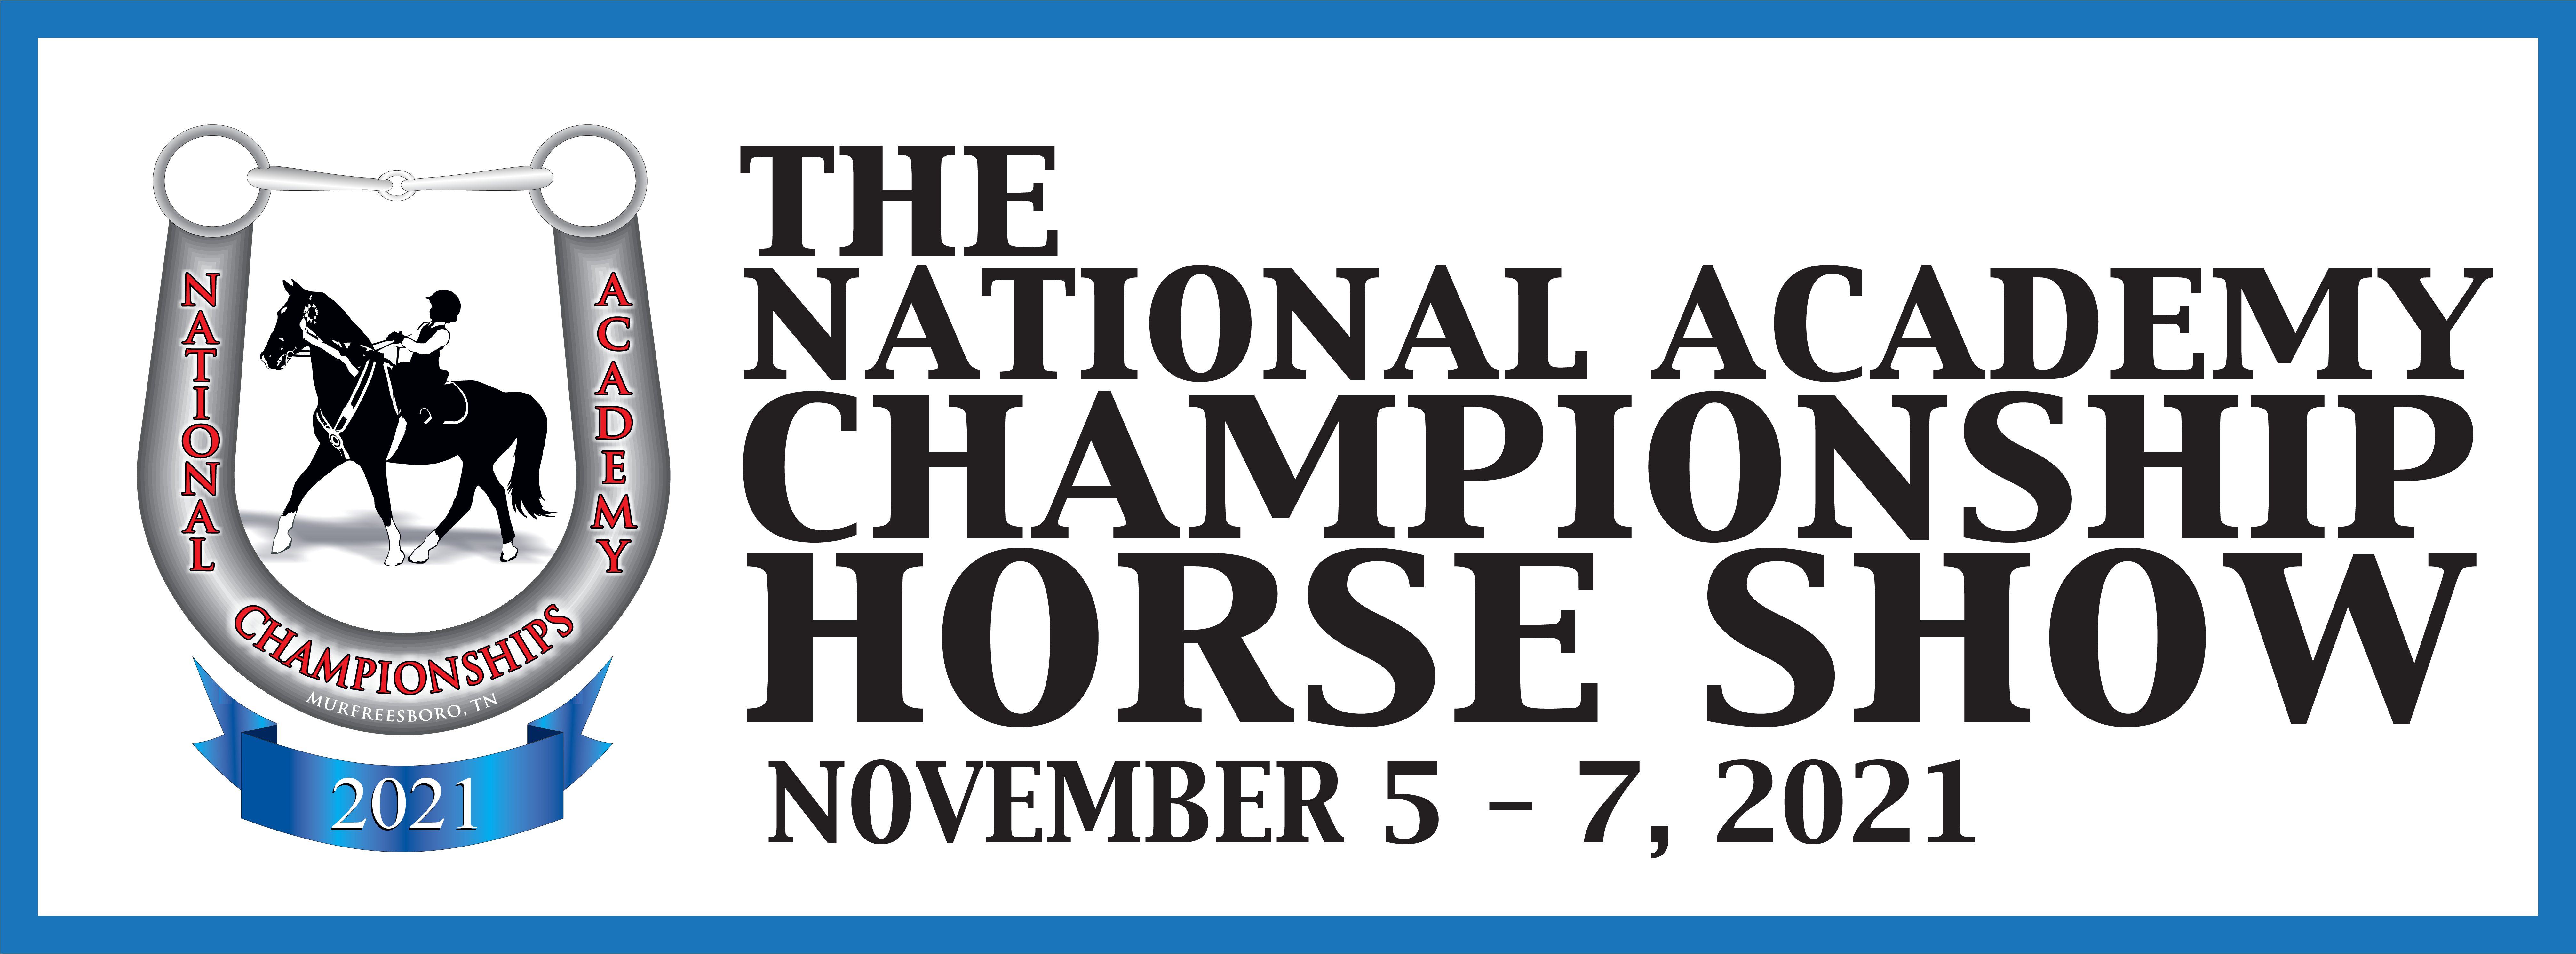 National Academy Championship Horse Show